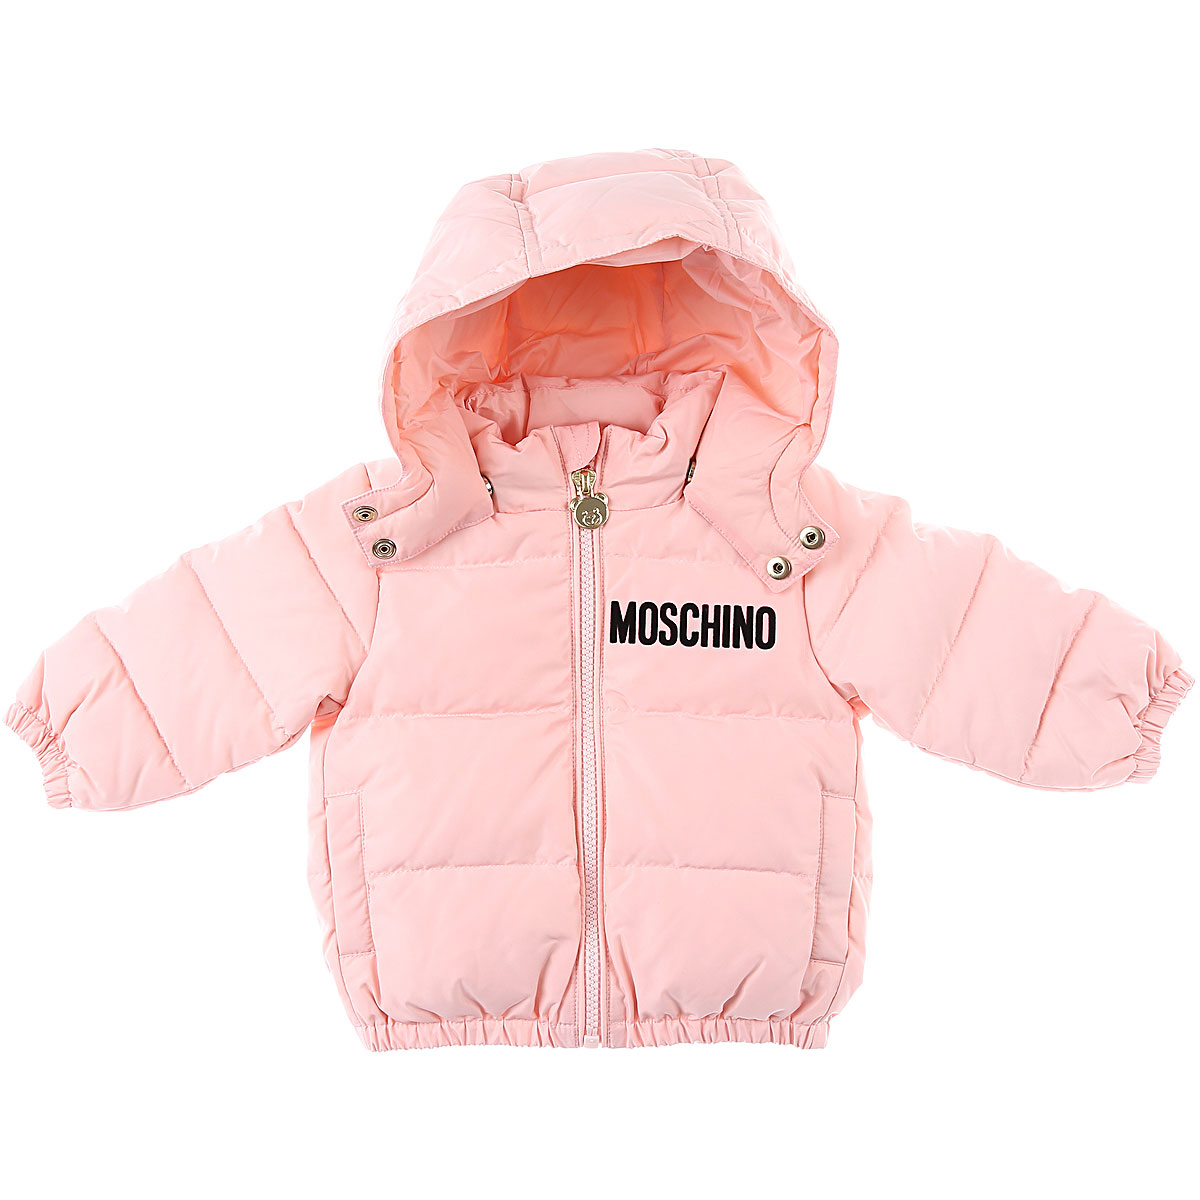 Moschino Baby Down Jacket for Girls On Sale, Pink, polyester, 2019, 12M 18M 24M 2Y 3Y 6M 9M